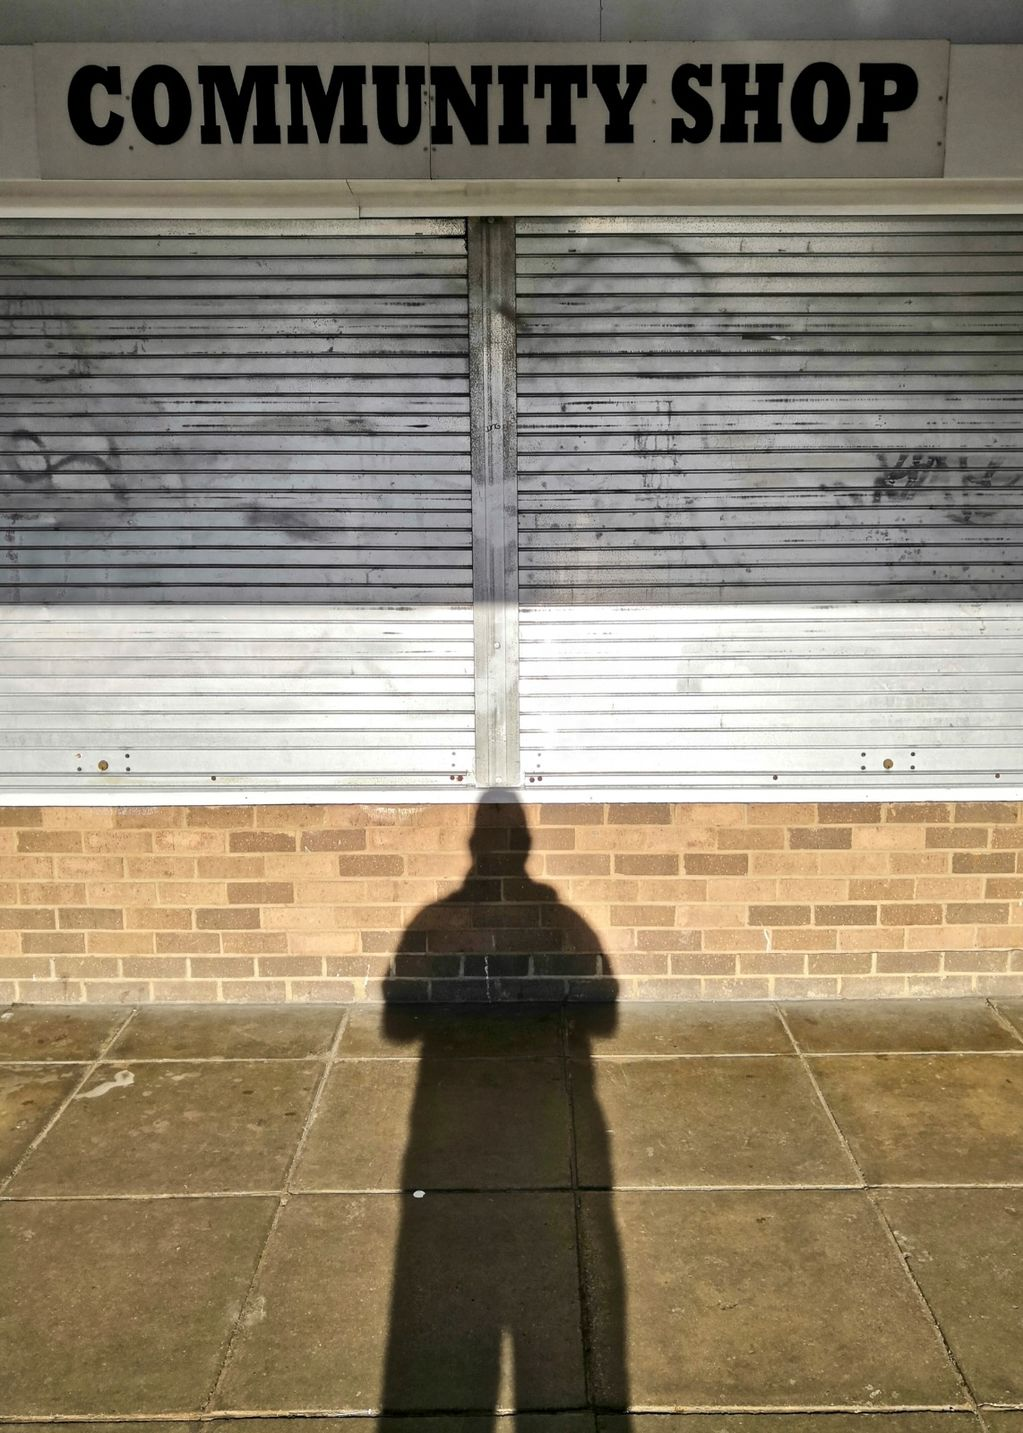 Self Portrait Outside the Community Shop 2019